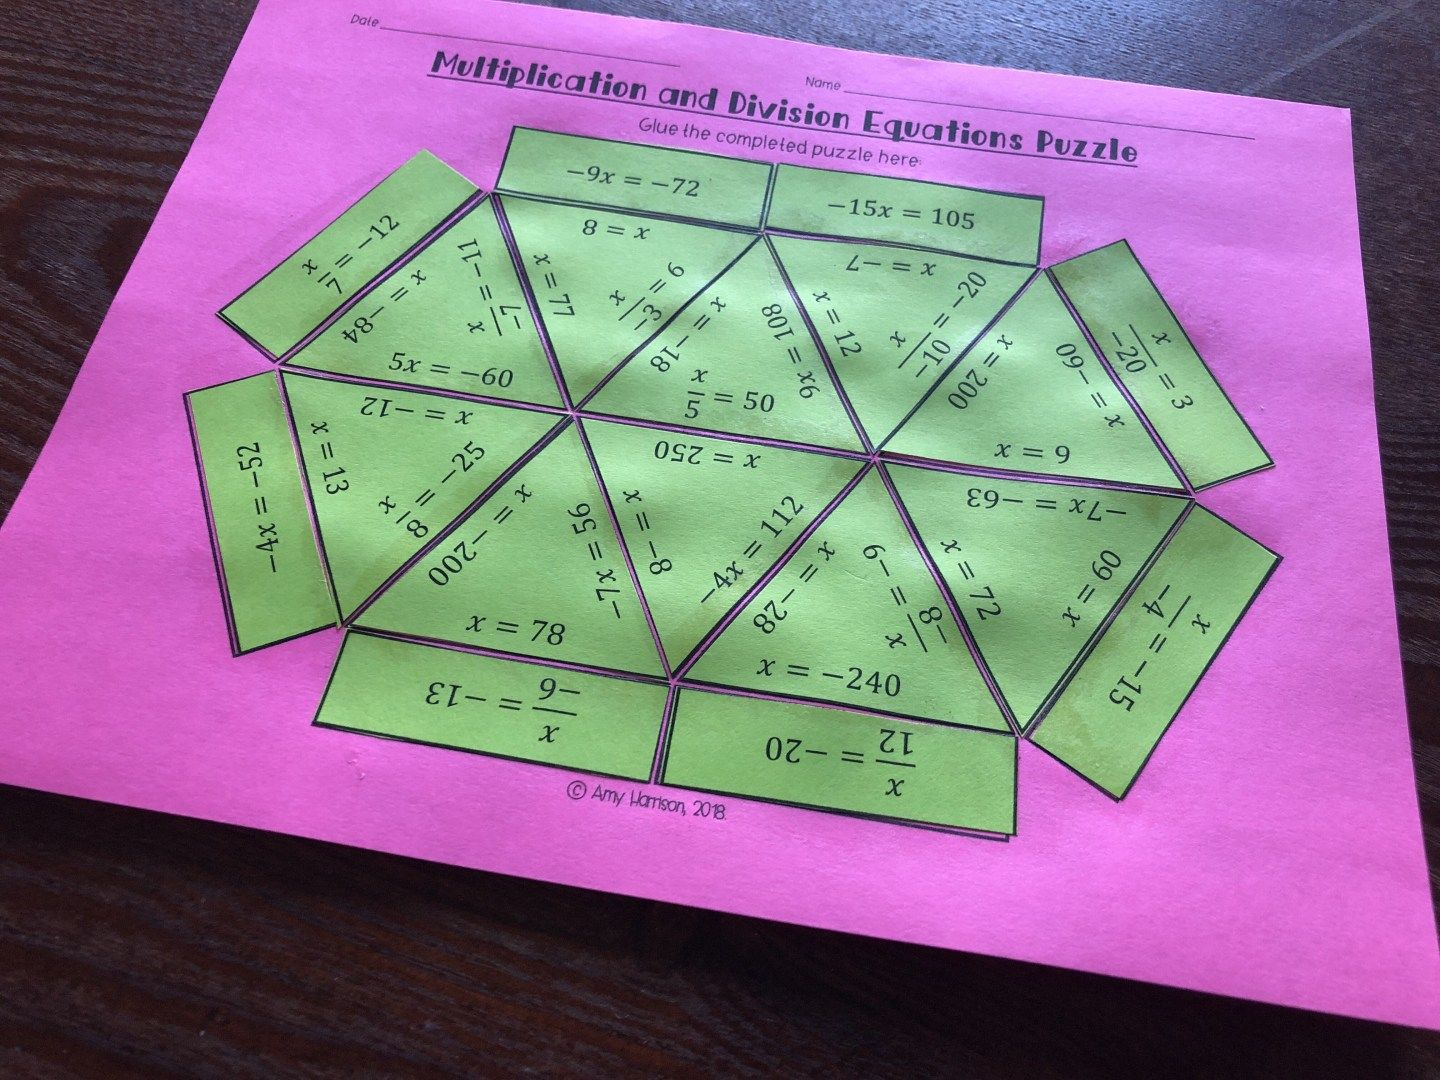 Multiplication Amp Division Equations Puzzle